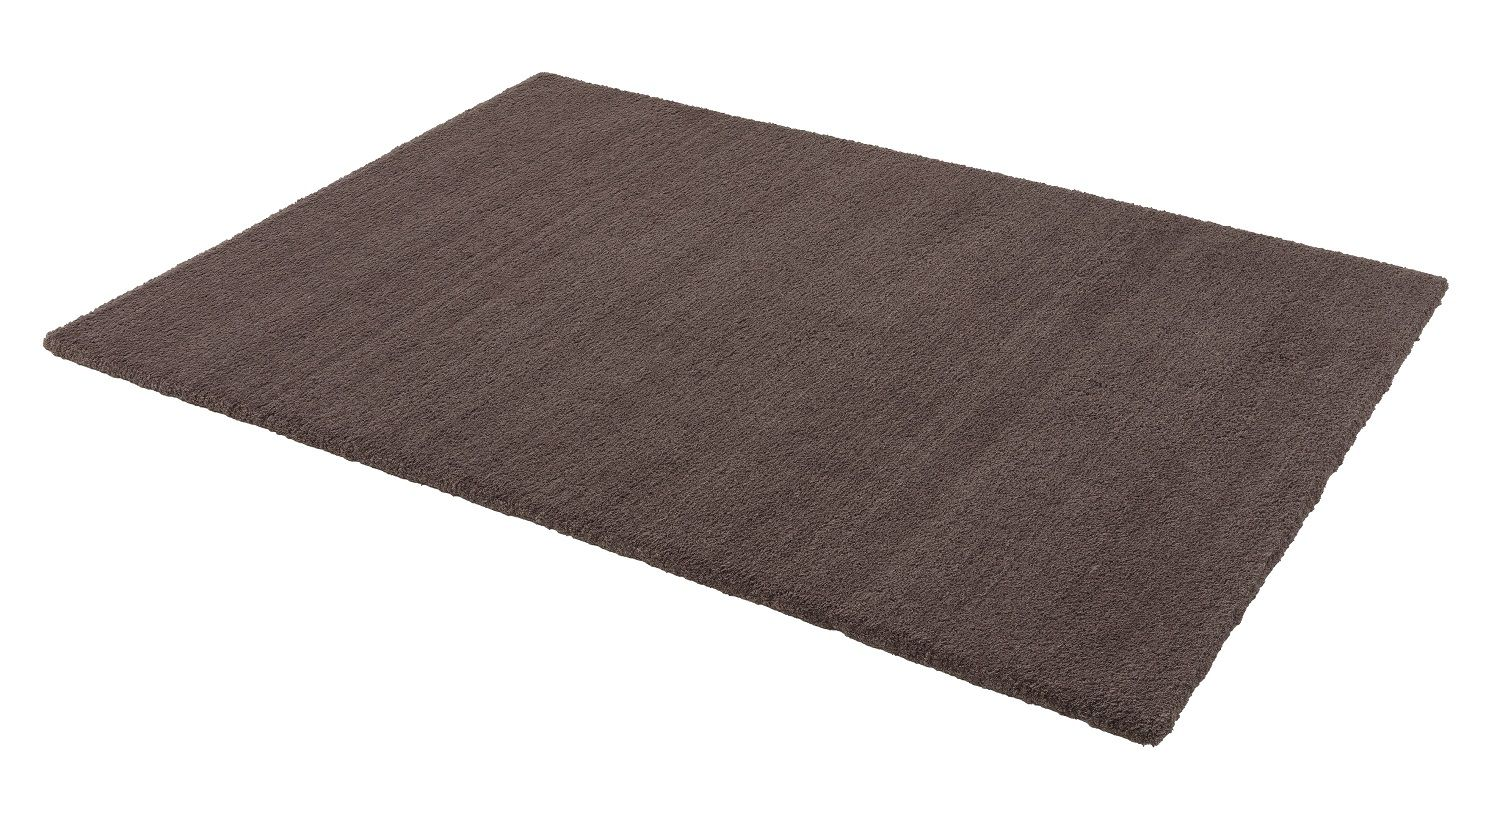 Teppich Hochflor Taupe Teppich Astra Livorno Deluxe 170 084 Taupe Raum Quadrat